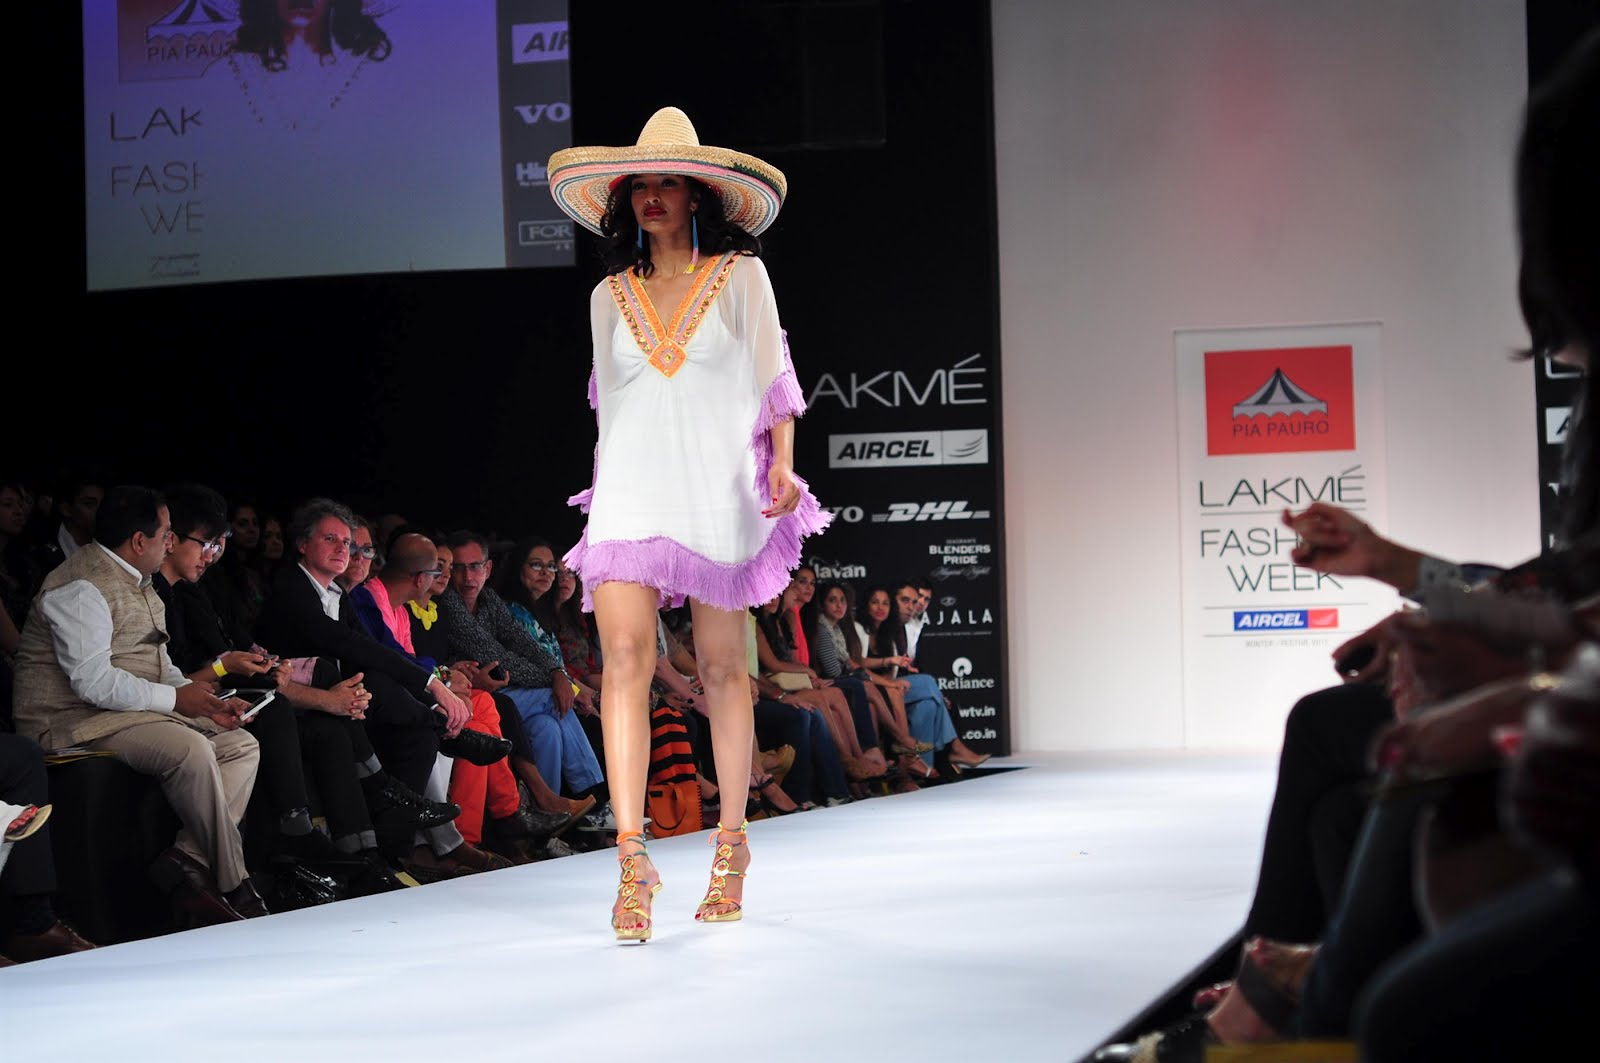 http://1.bp.blogspot.com/-Ty8QqOcEUB0/UB9tv39IWiI/AAAAAAAADVE/d7_d7Zw_R3I/s1600/Lakme-Fashion-Week-2012-Wallpapers-1.jpg